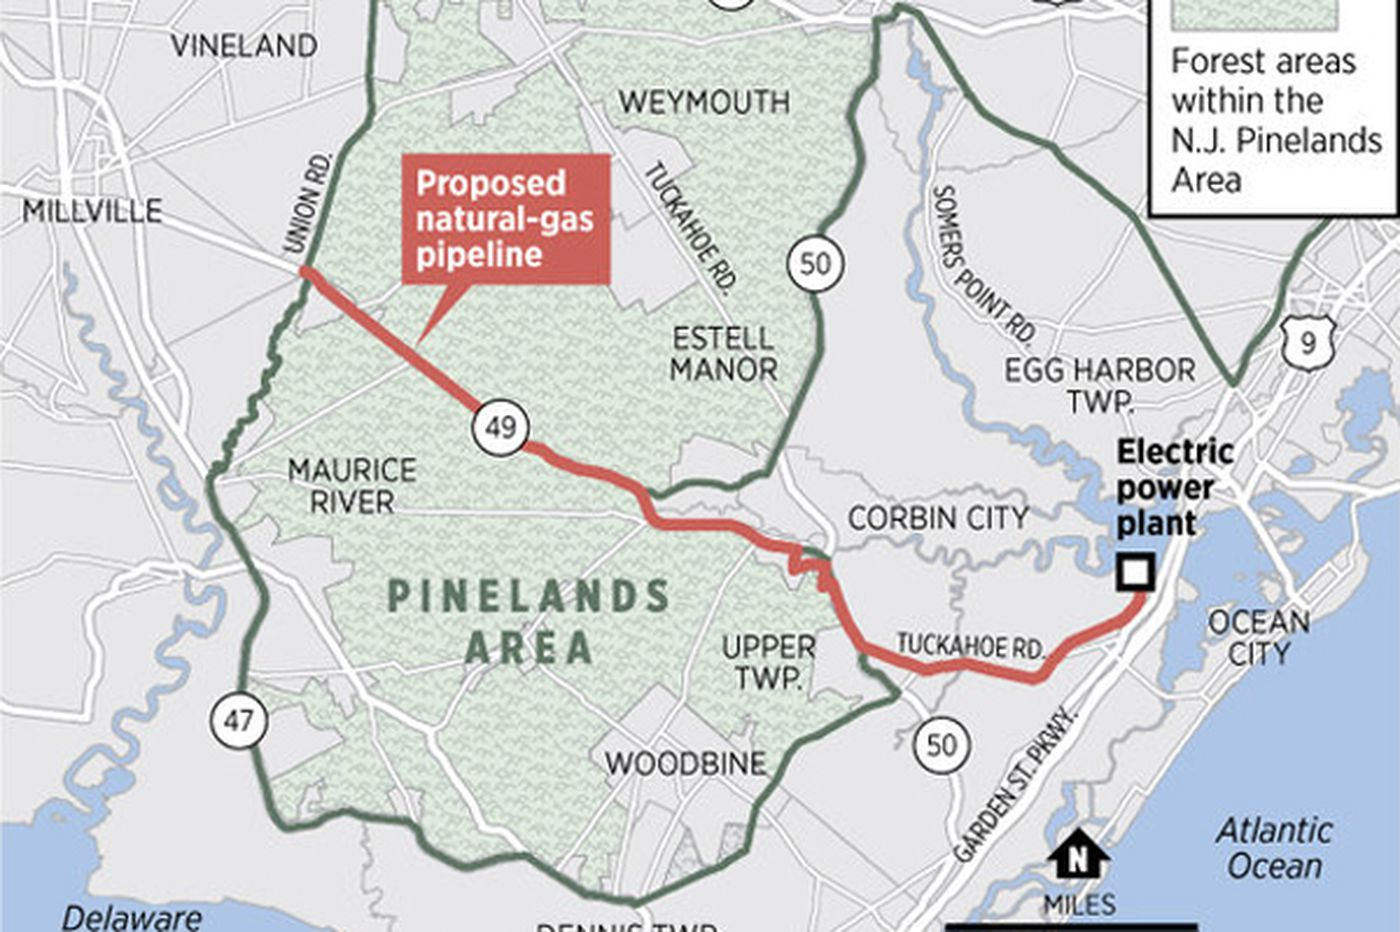 Controversial plan to build pipeline through New Jersey Pinelands appears dead